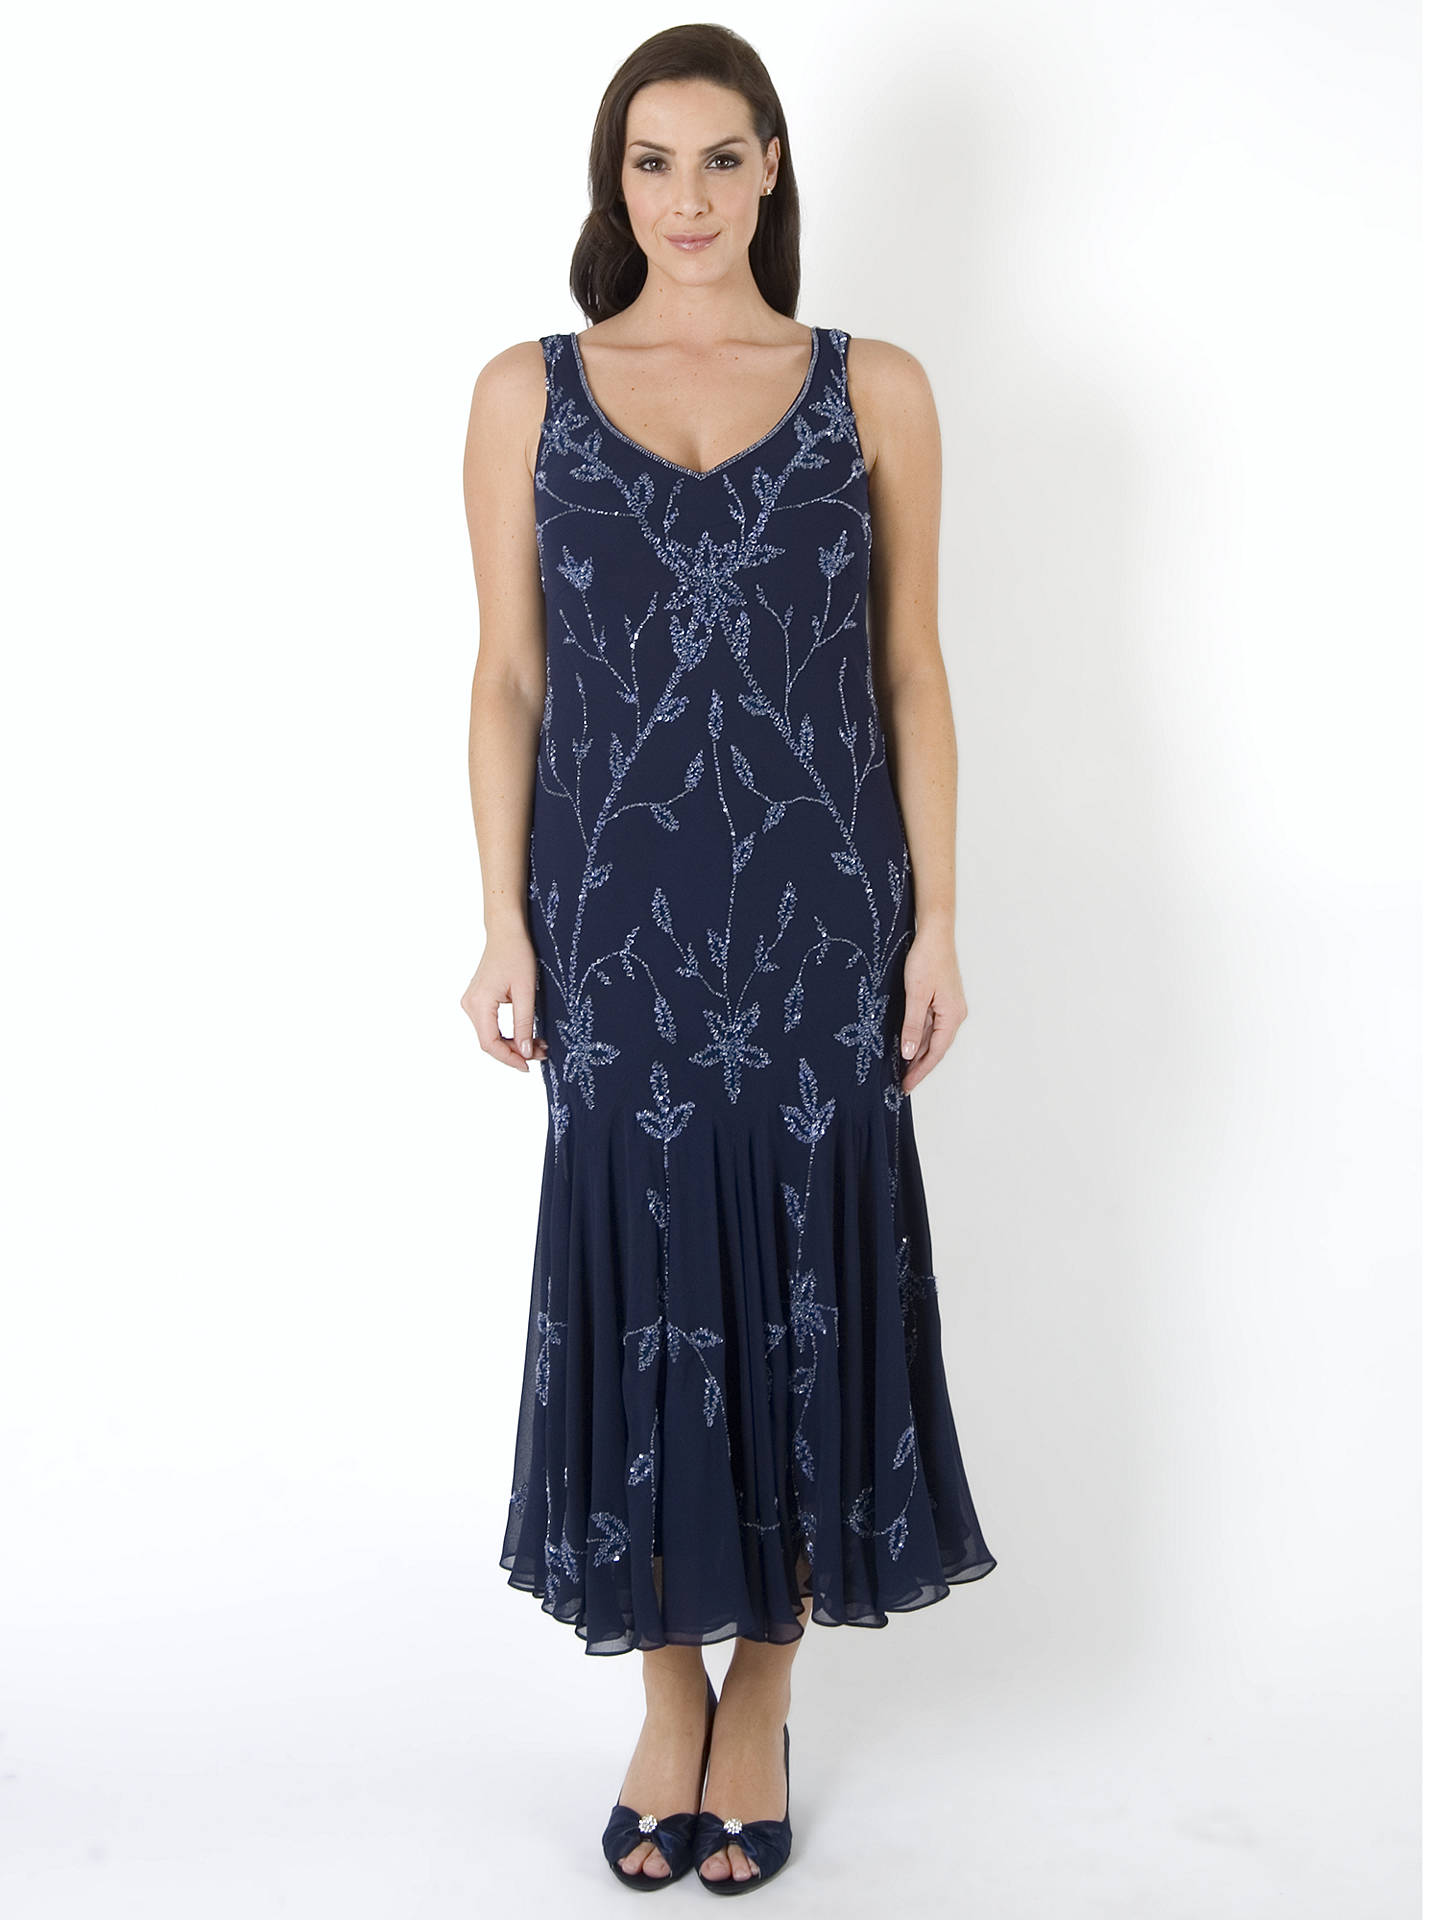 BuyChesca Allover Bead Dress, Navy/Lilac, 12 Online at johnlewis.com